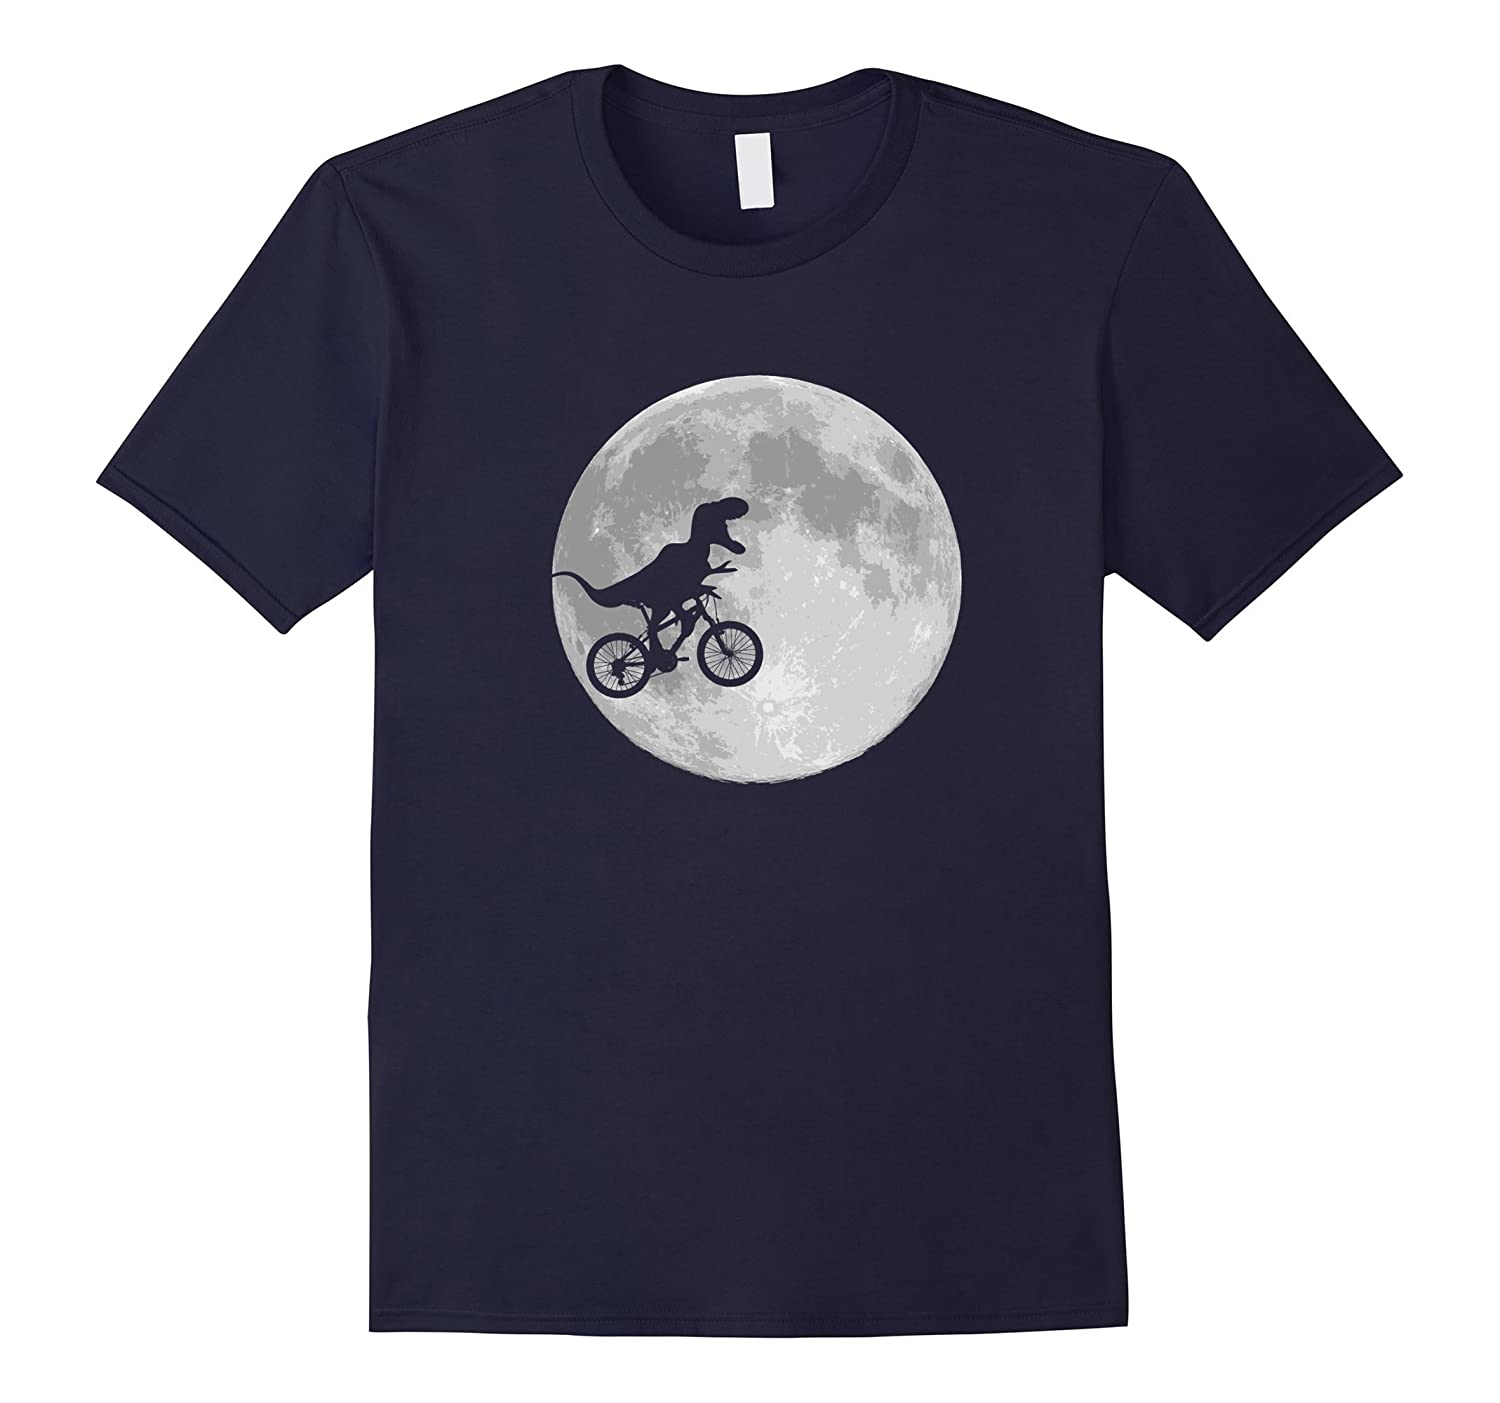 Dinosaur Bike and Moon shirt retro 80s funny t-shirt-TD